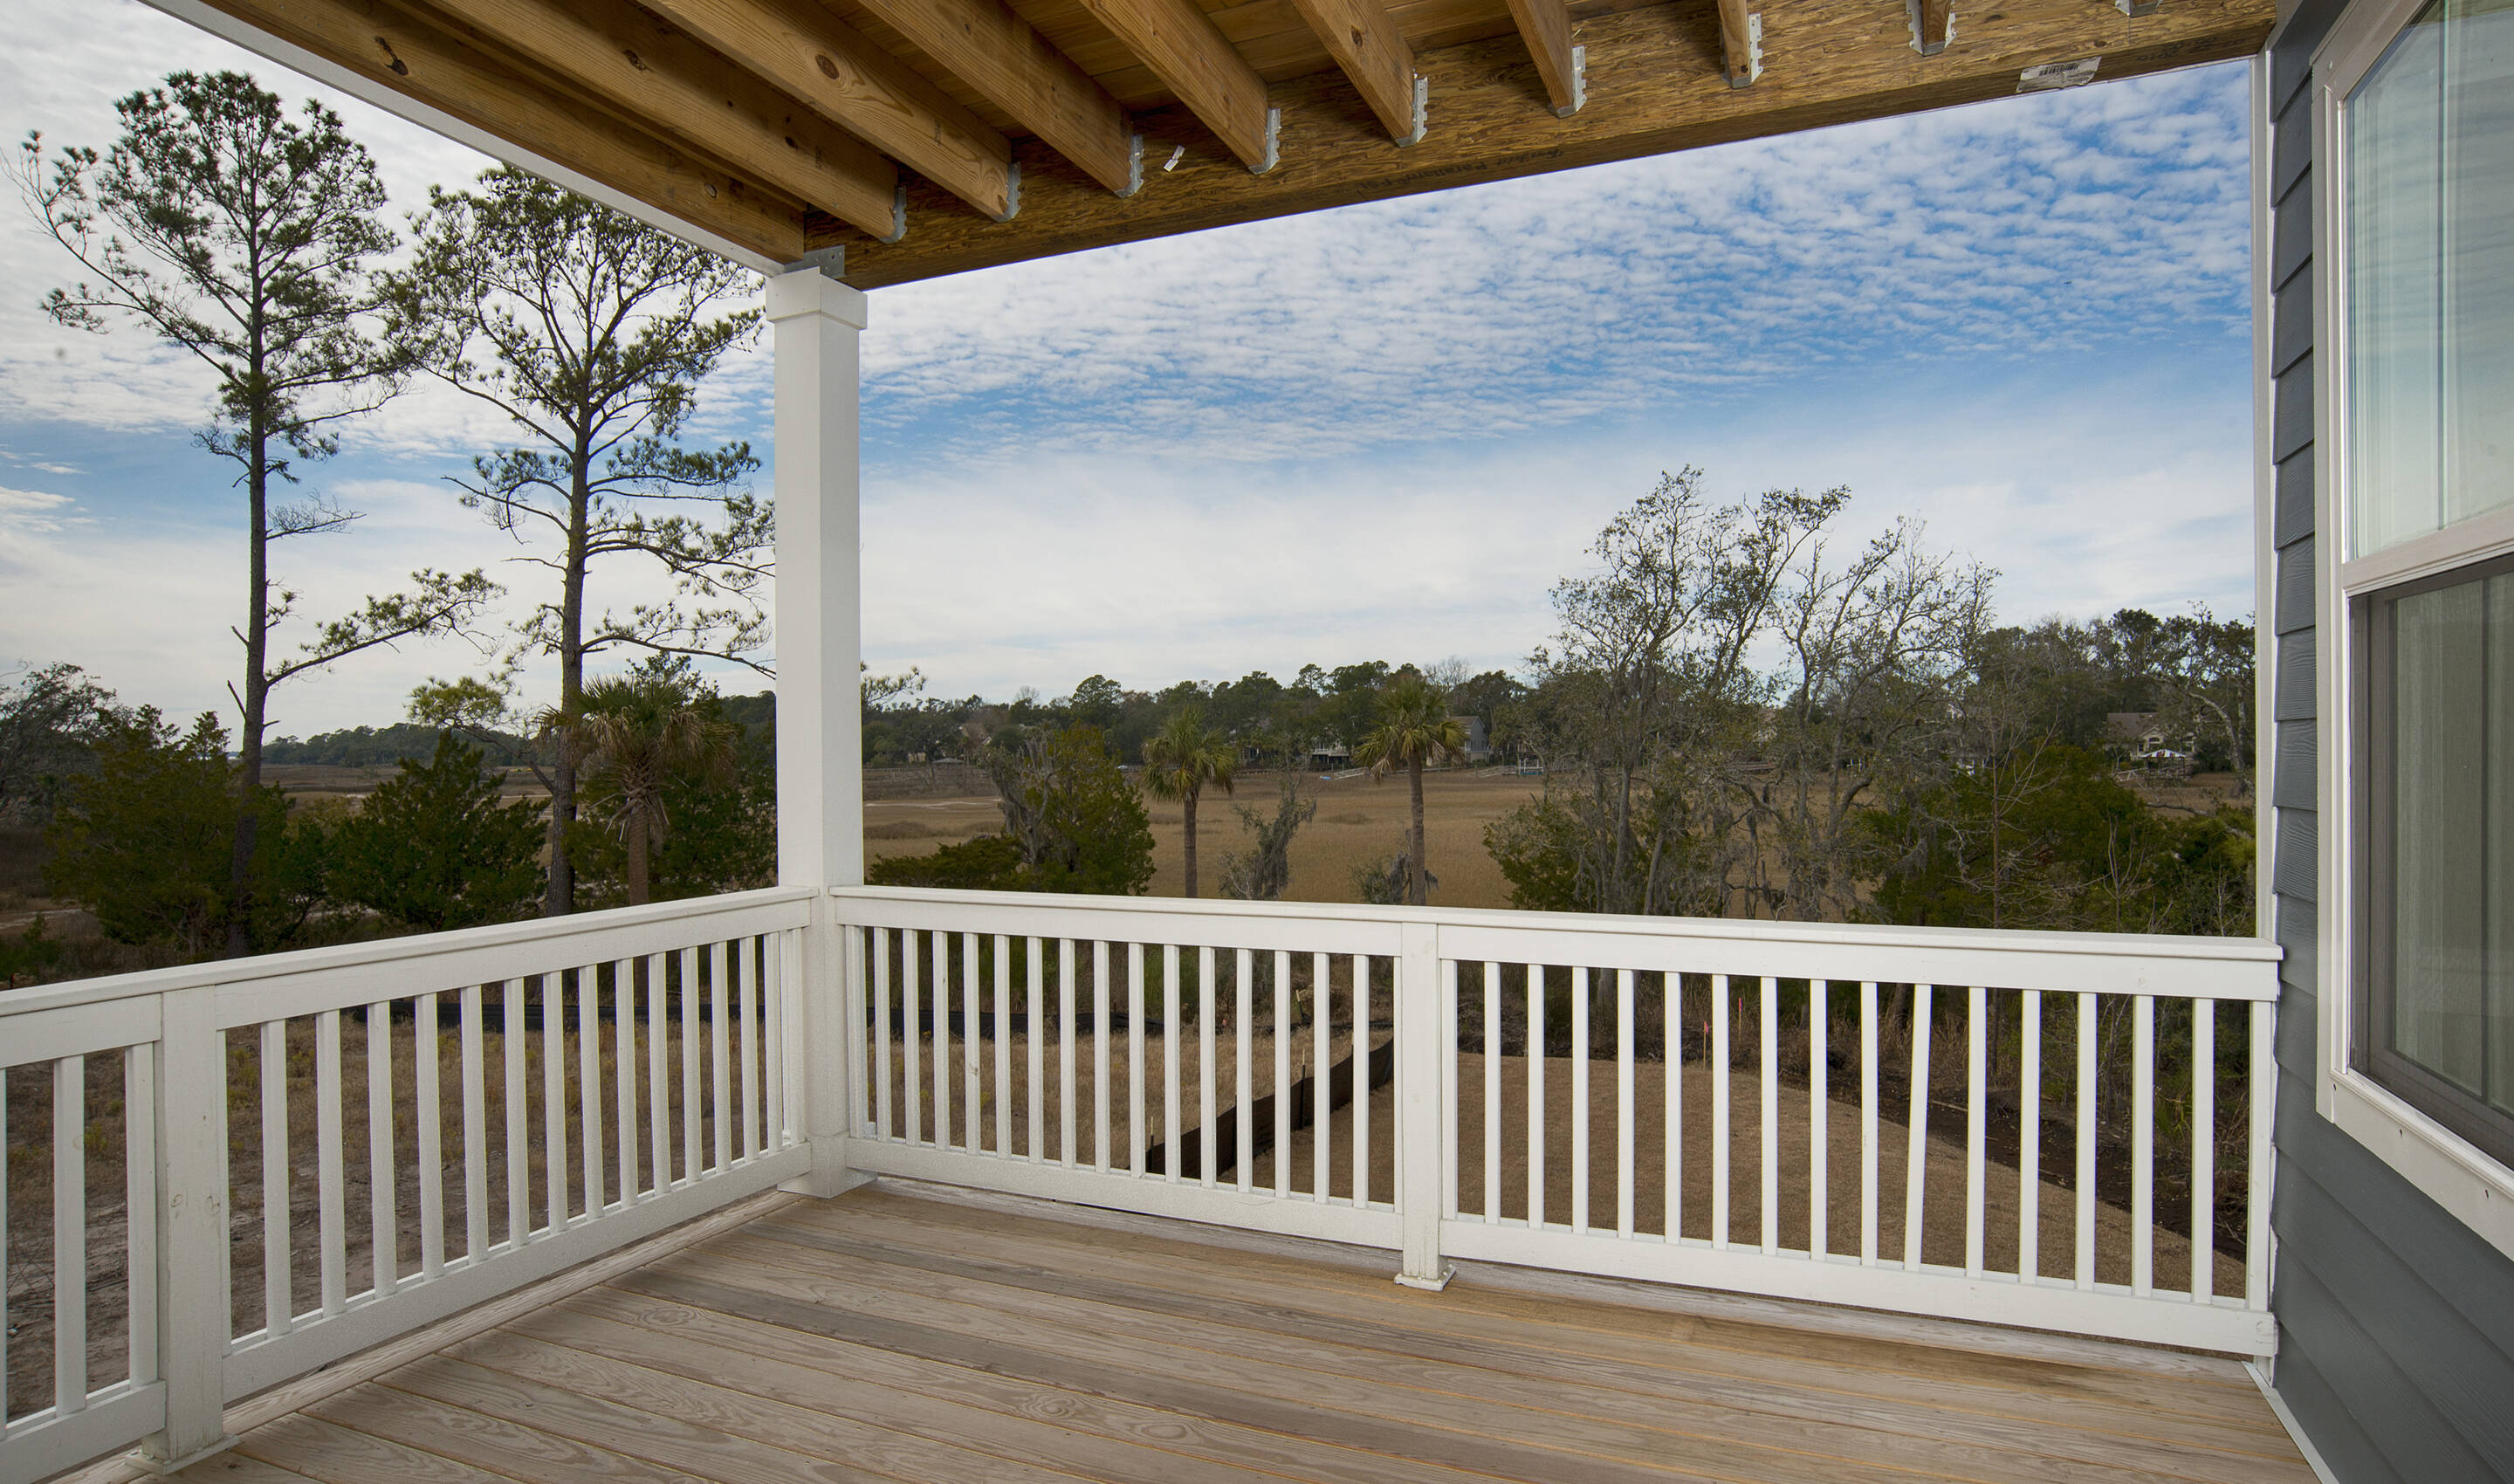 1st fl deck coligny 2 b lot 12 new homes at salk creek landing